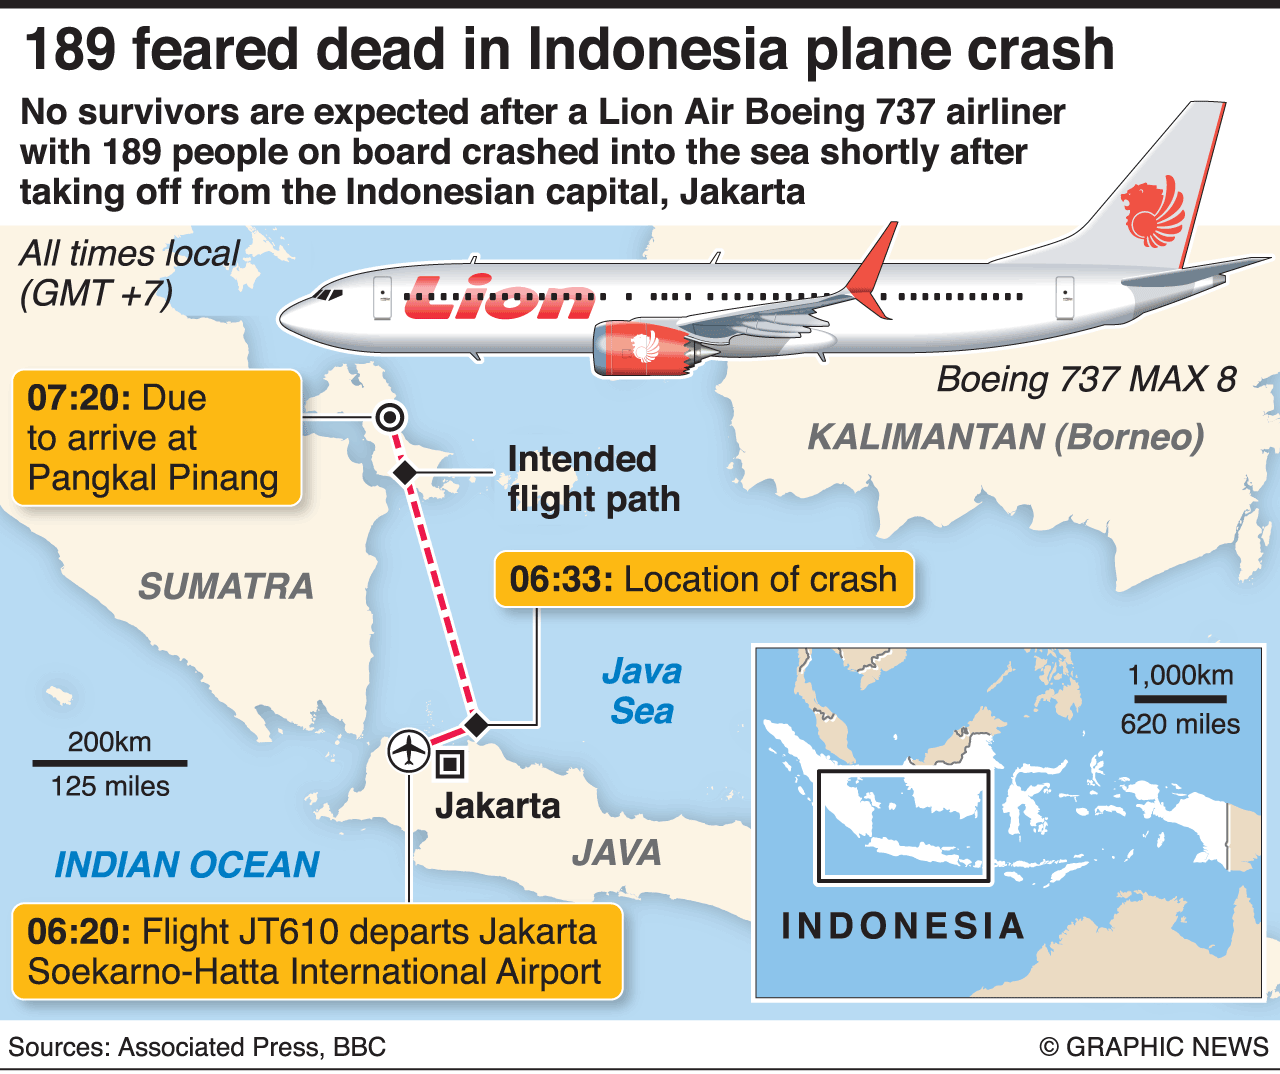 Lion Air crash: Indonesia orders inspection of all Boeing